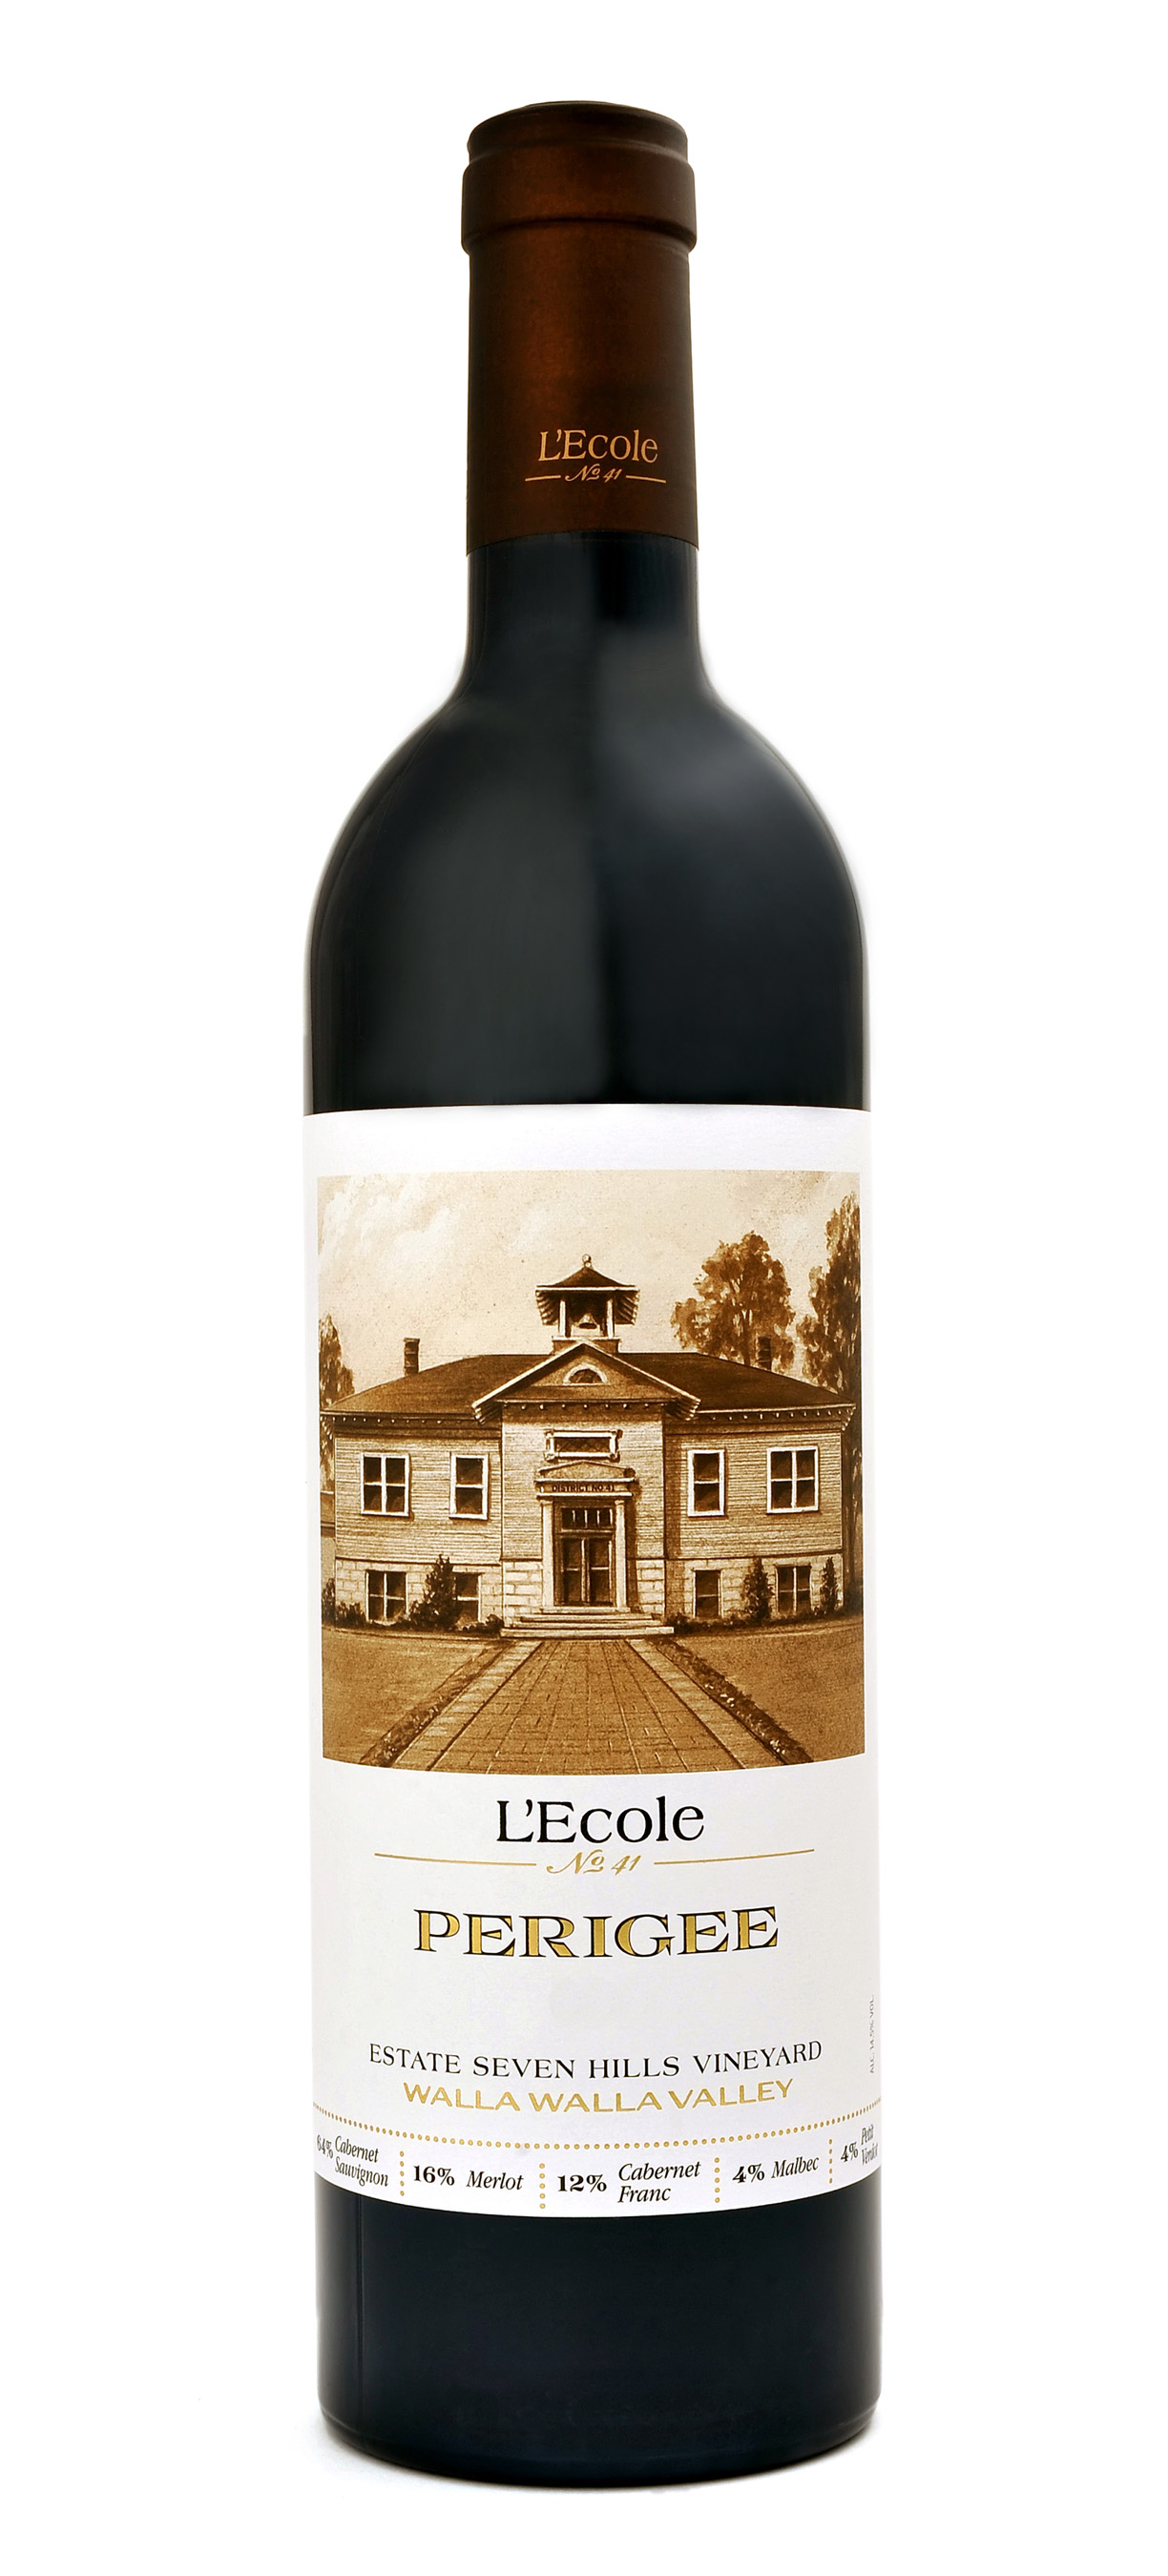 Red Wines Under $50 - L'ecole Number 41 Merlot